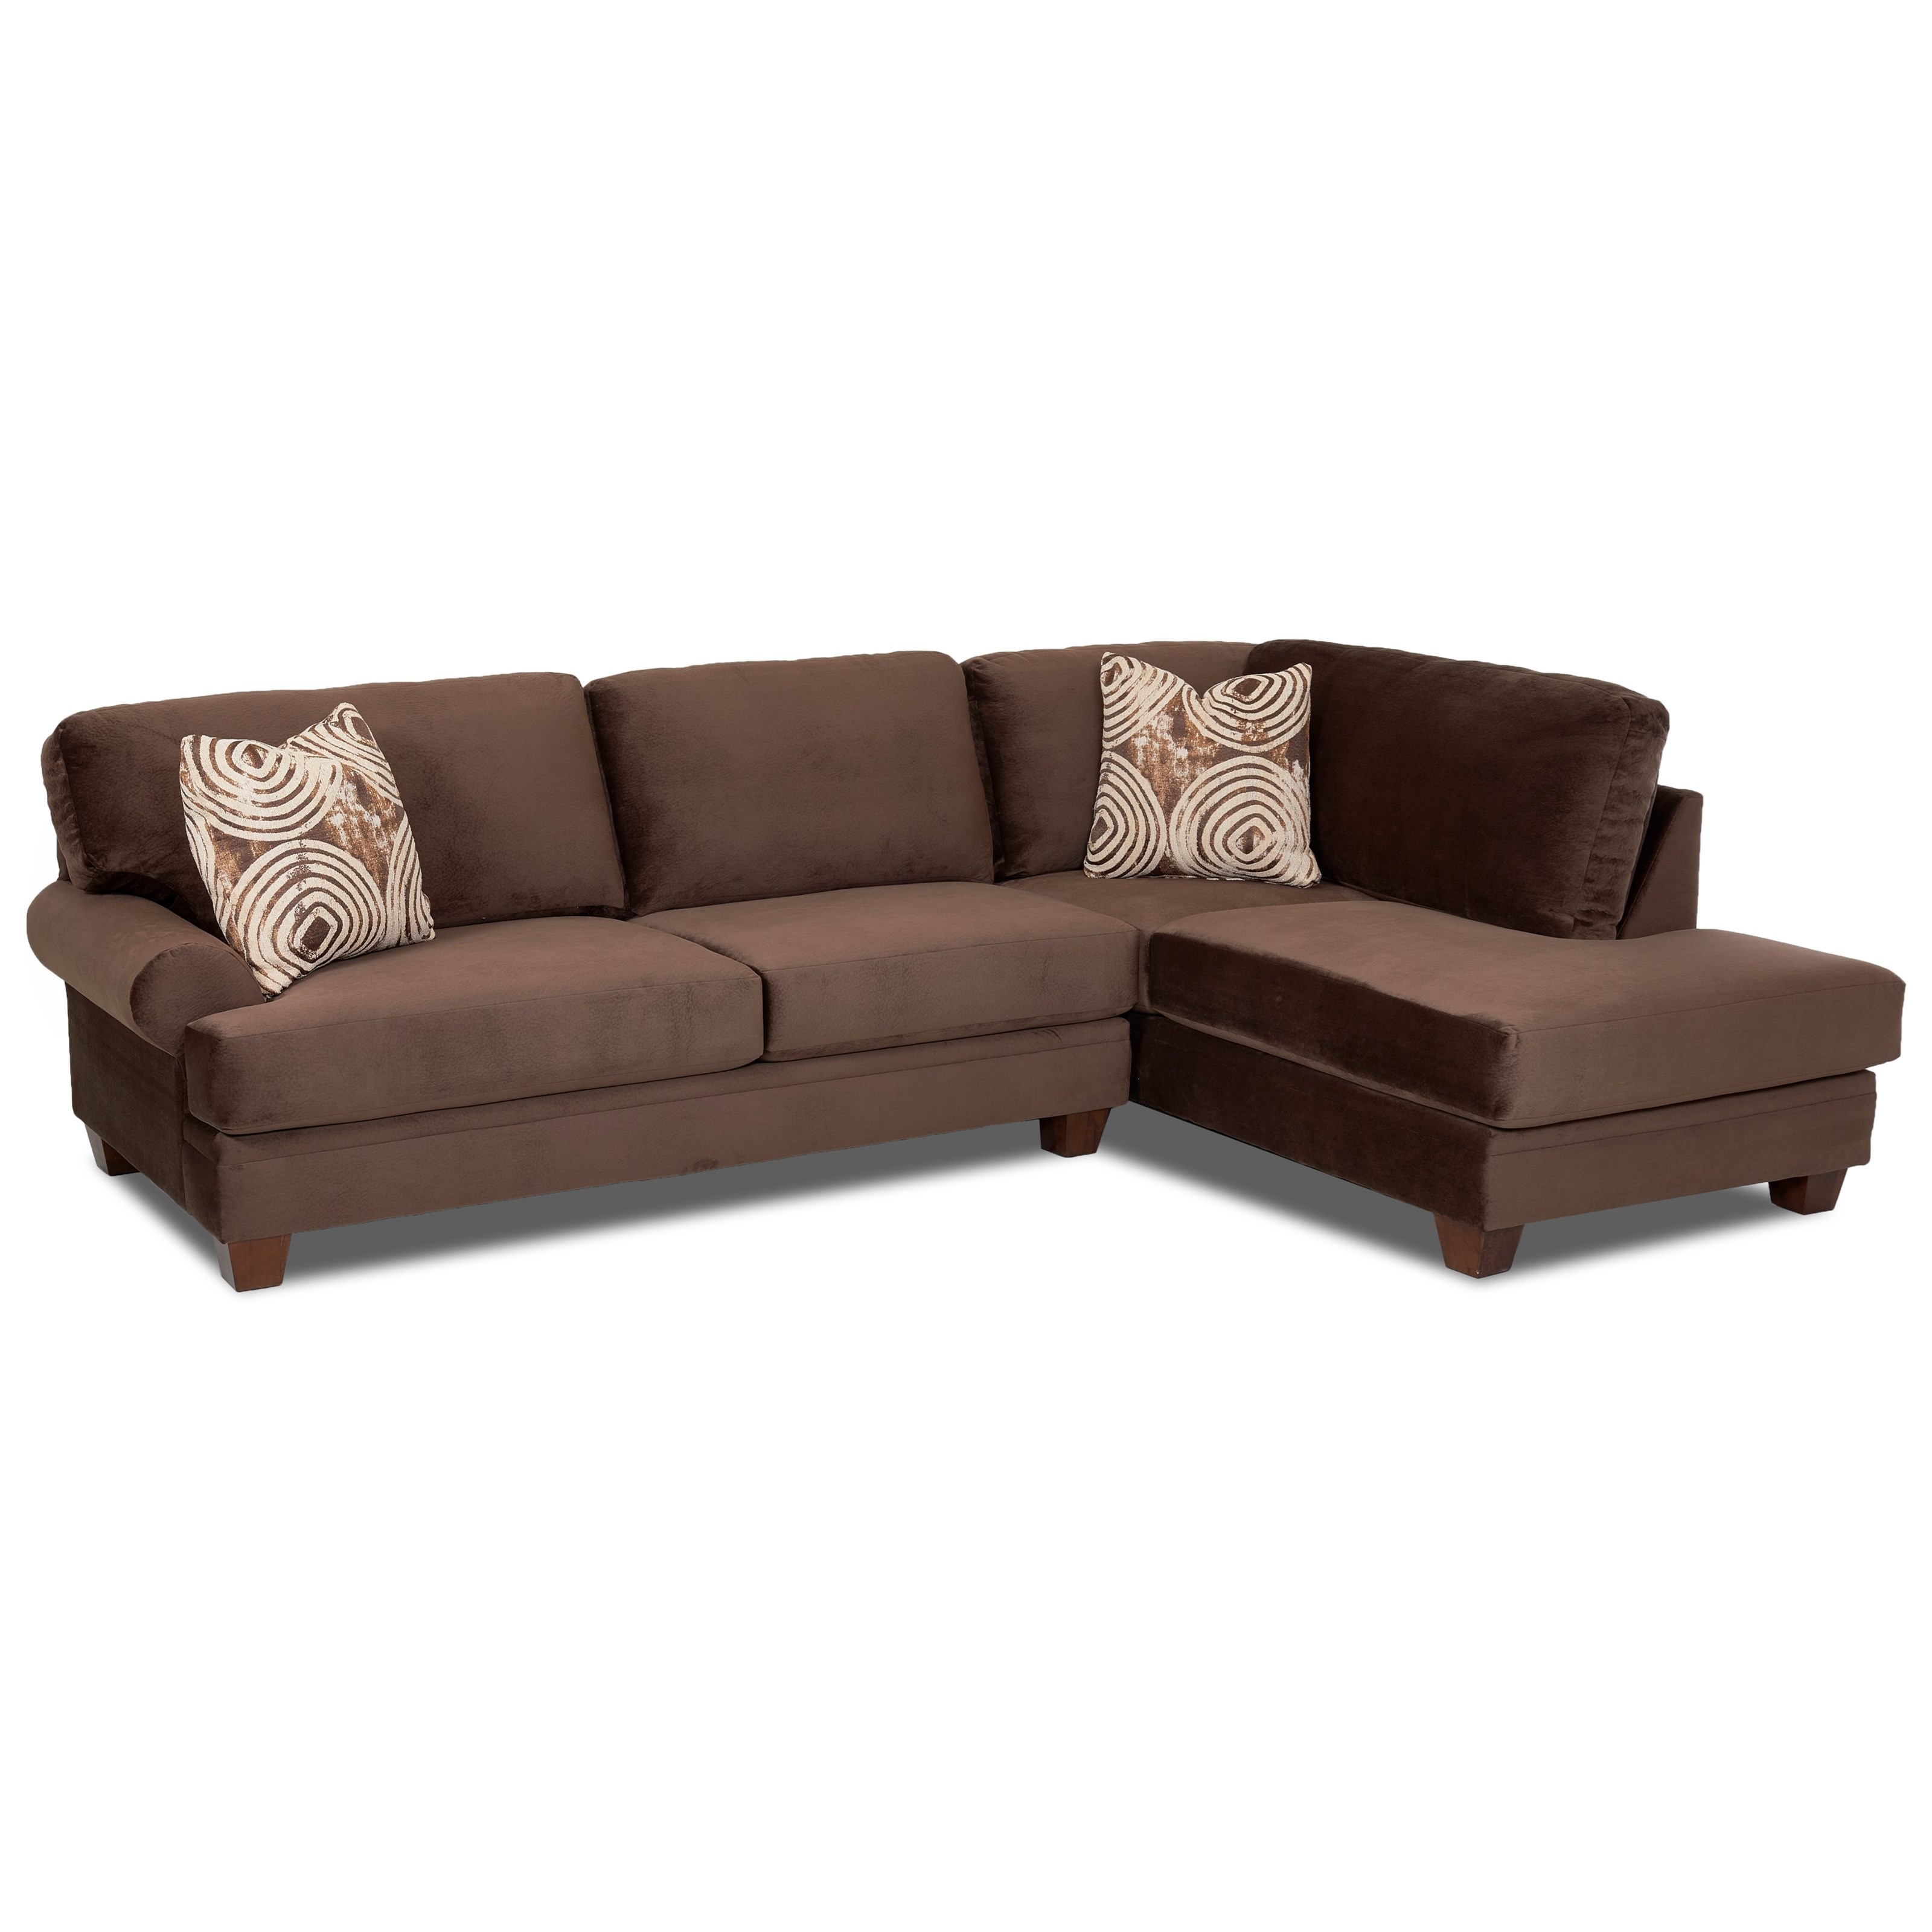 Klaussner tinley two piece sectional sofa with raf sofa for Couch with 2 chaises